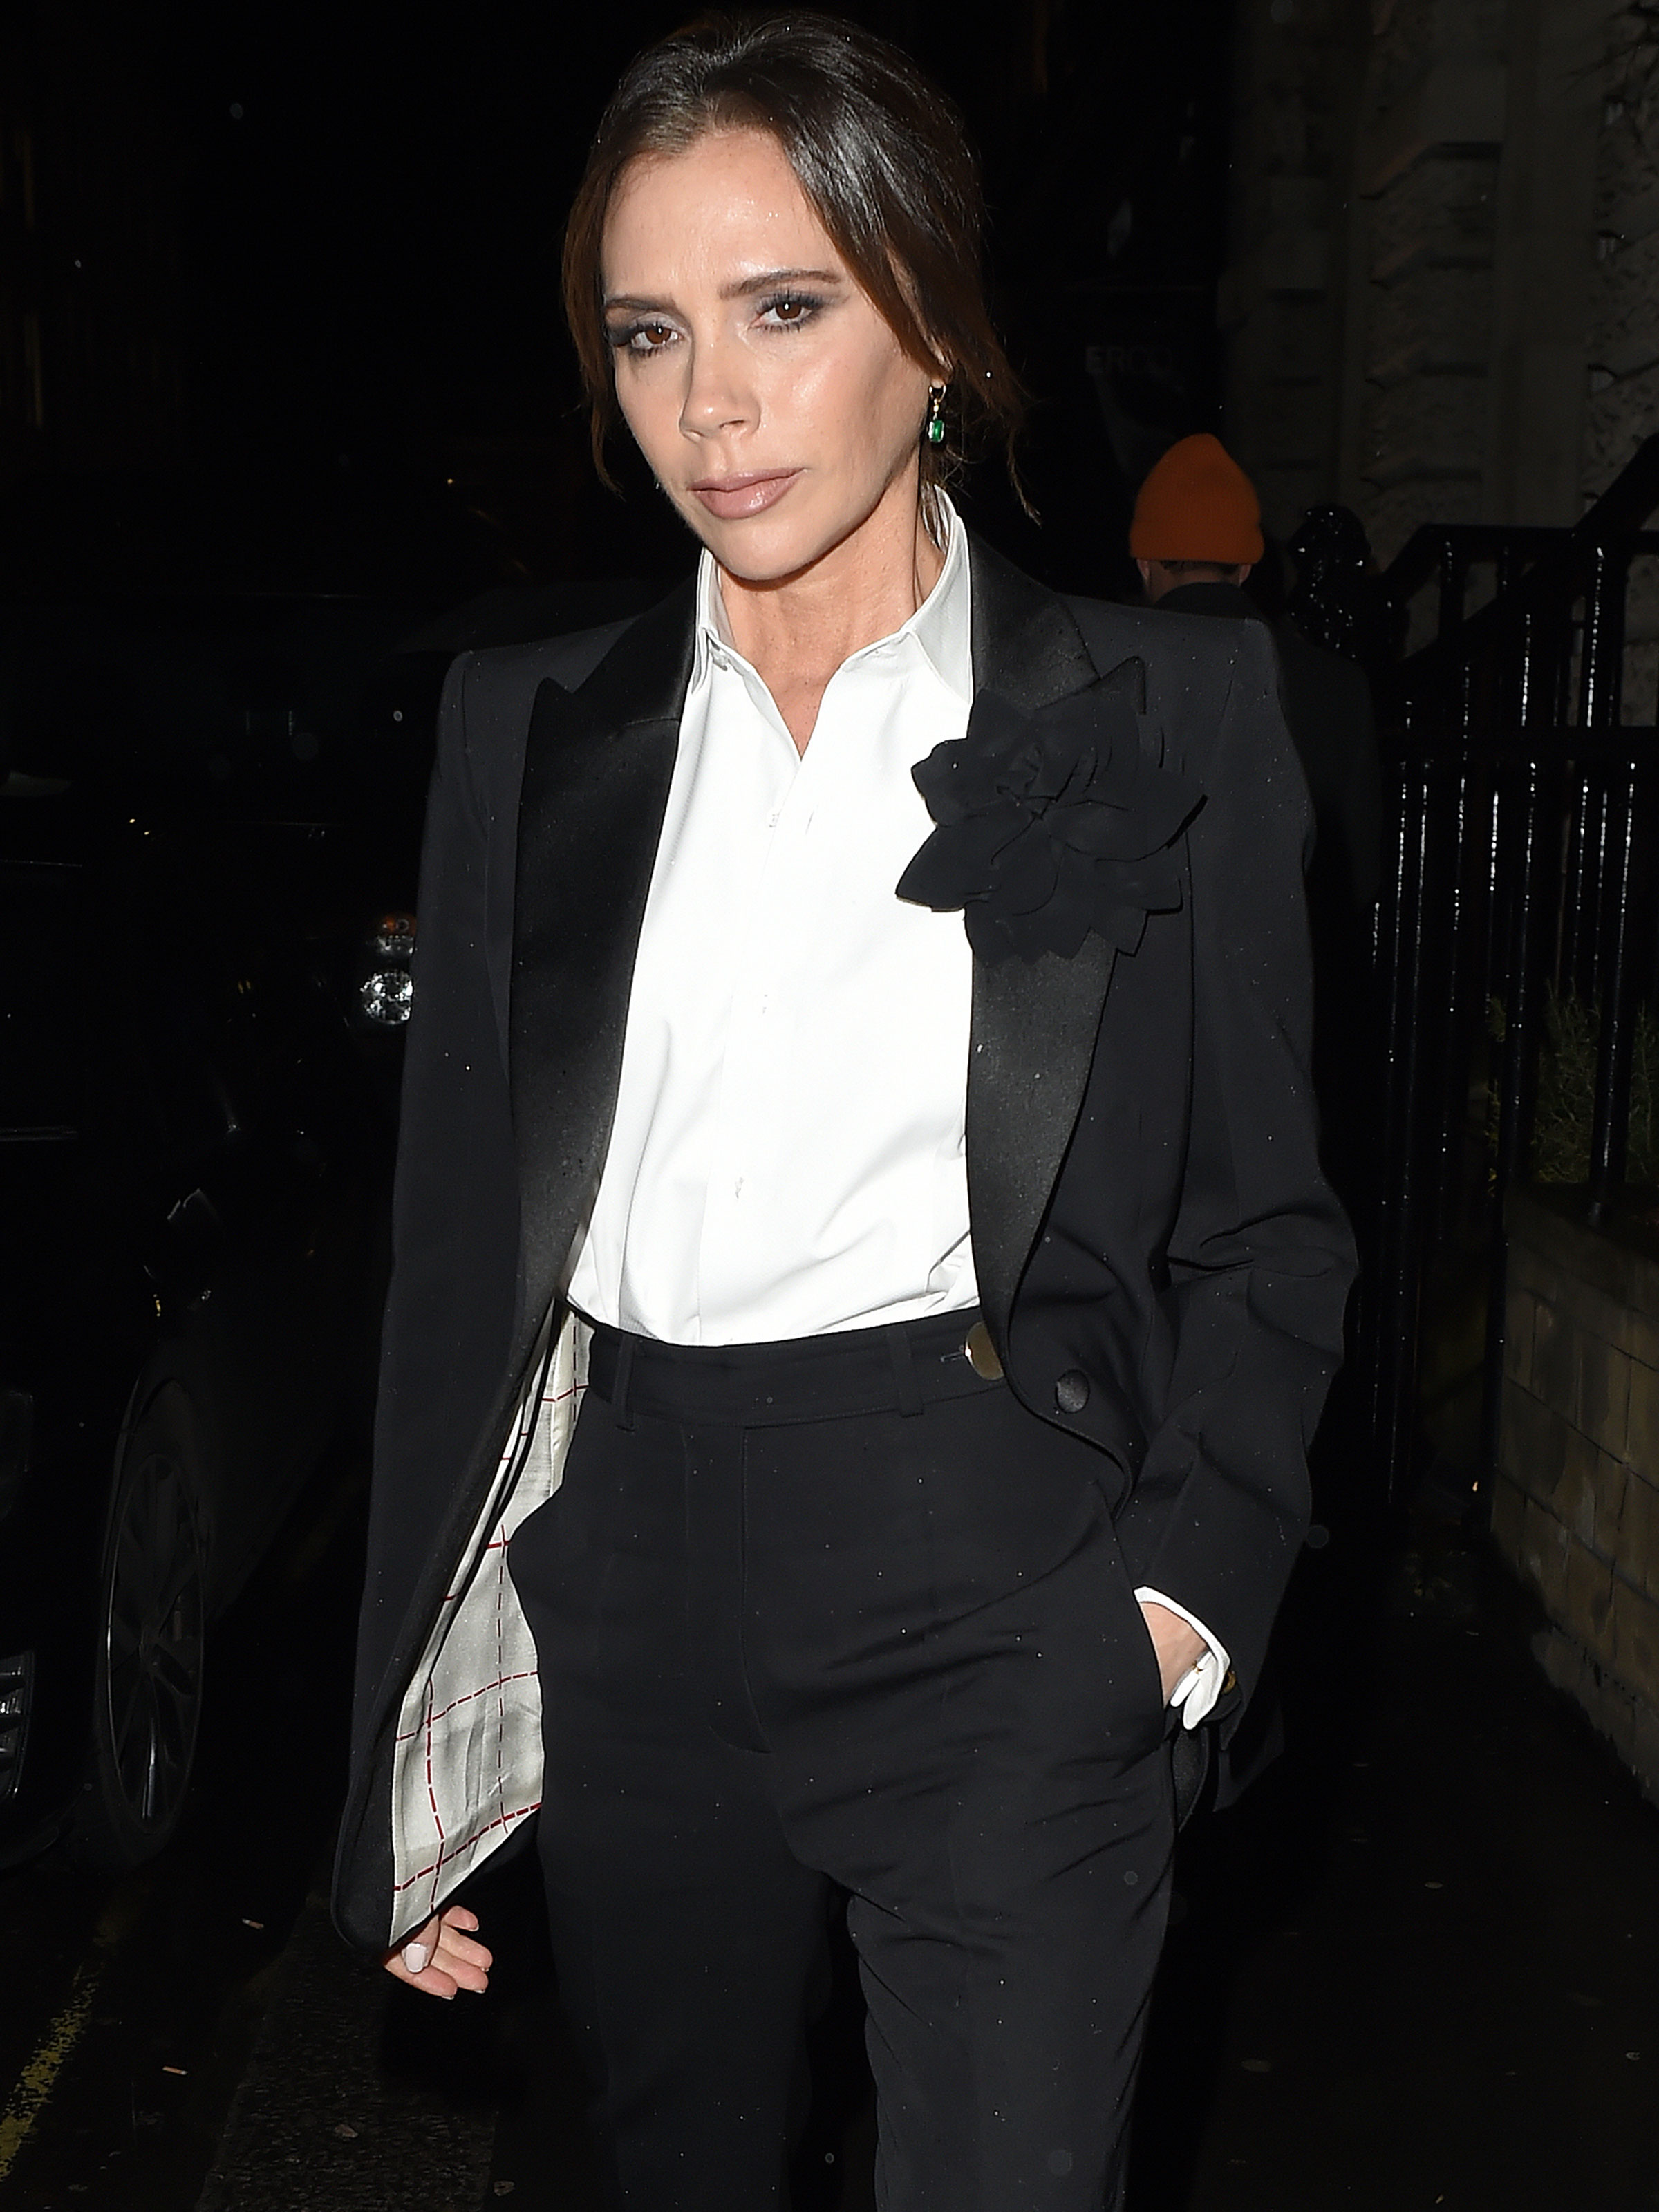 Victoria Beckham hilariously reveals what she's actually famous for